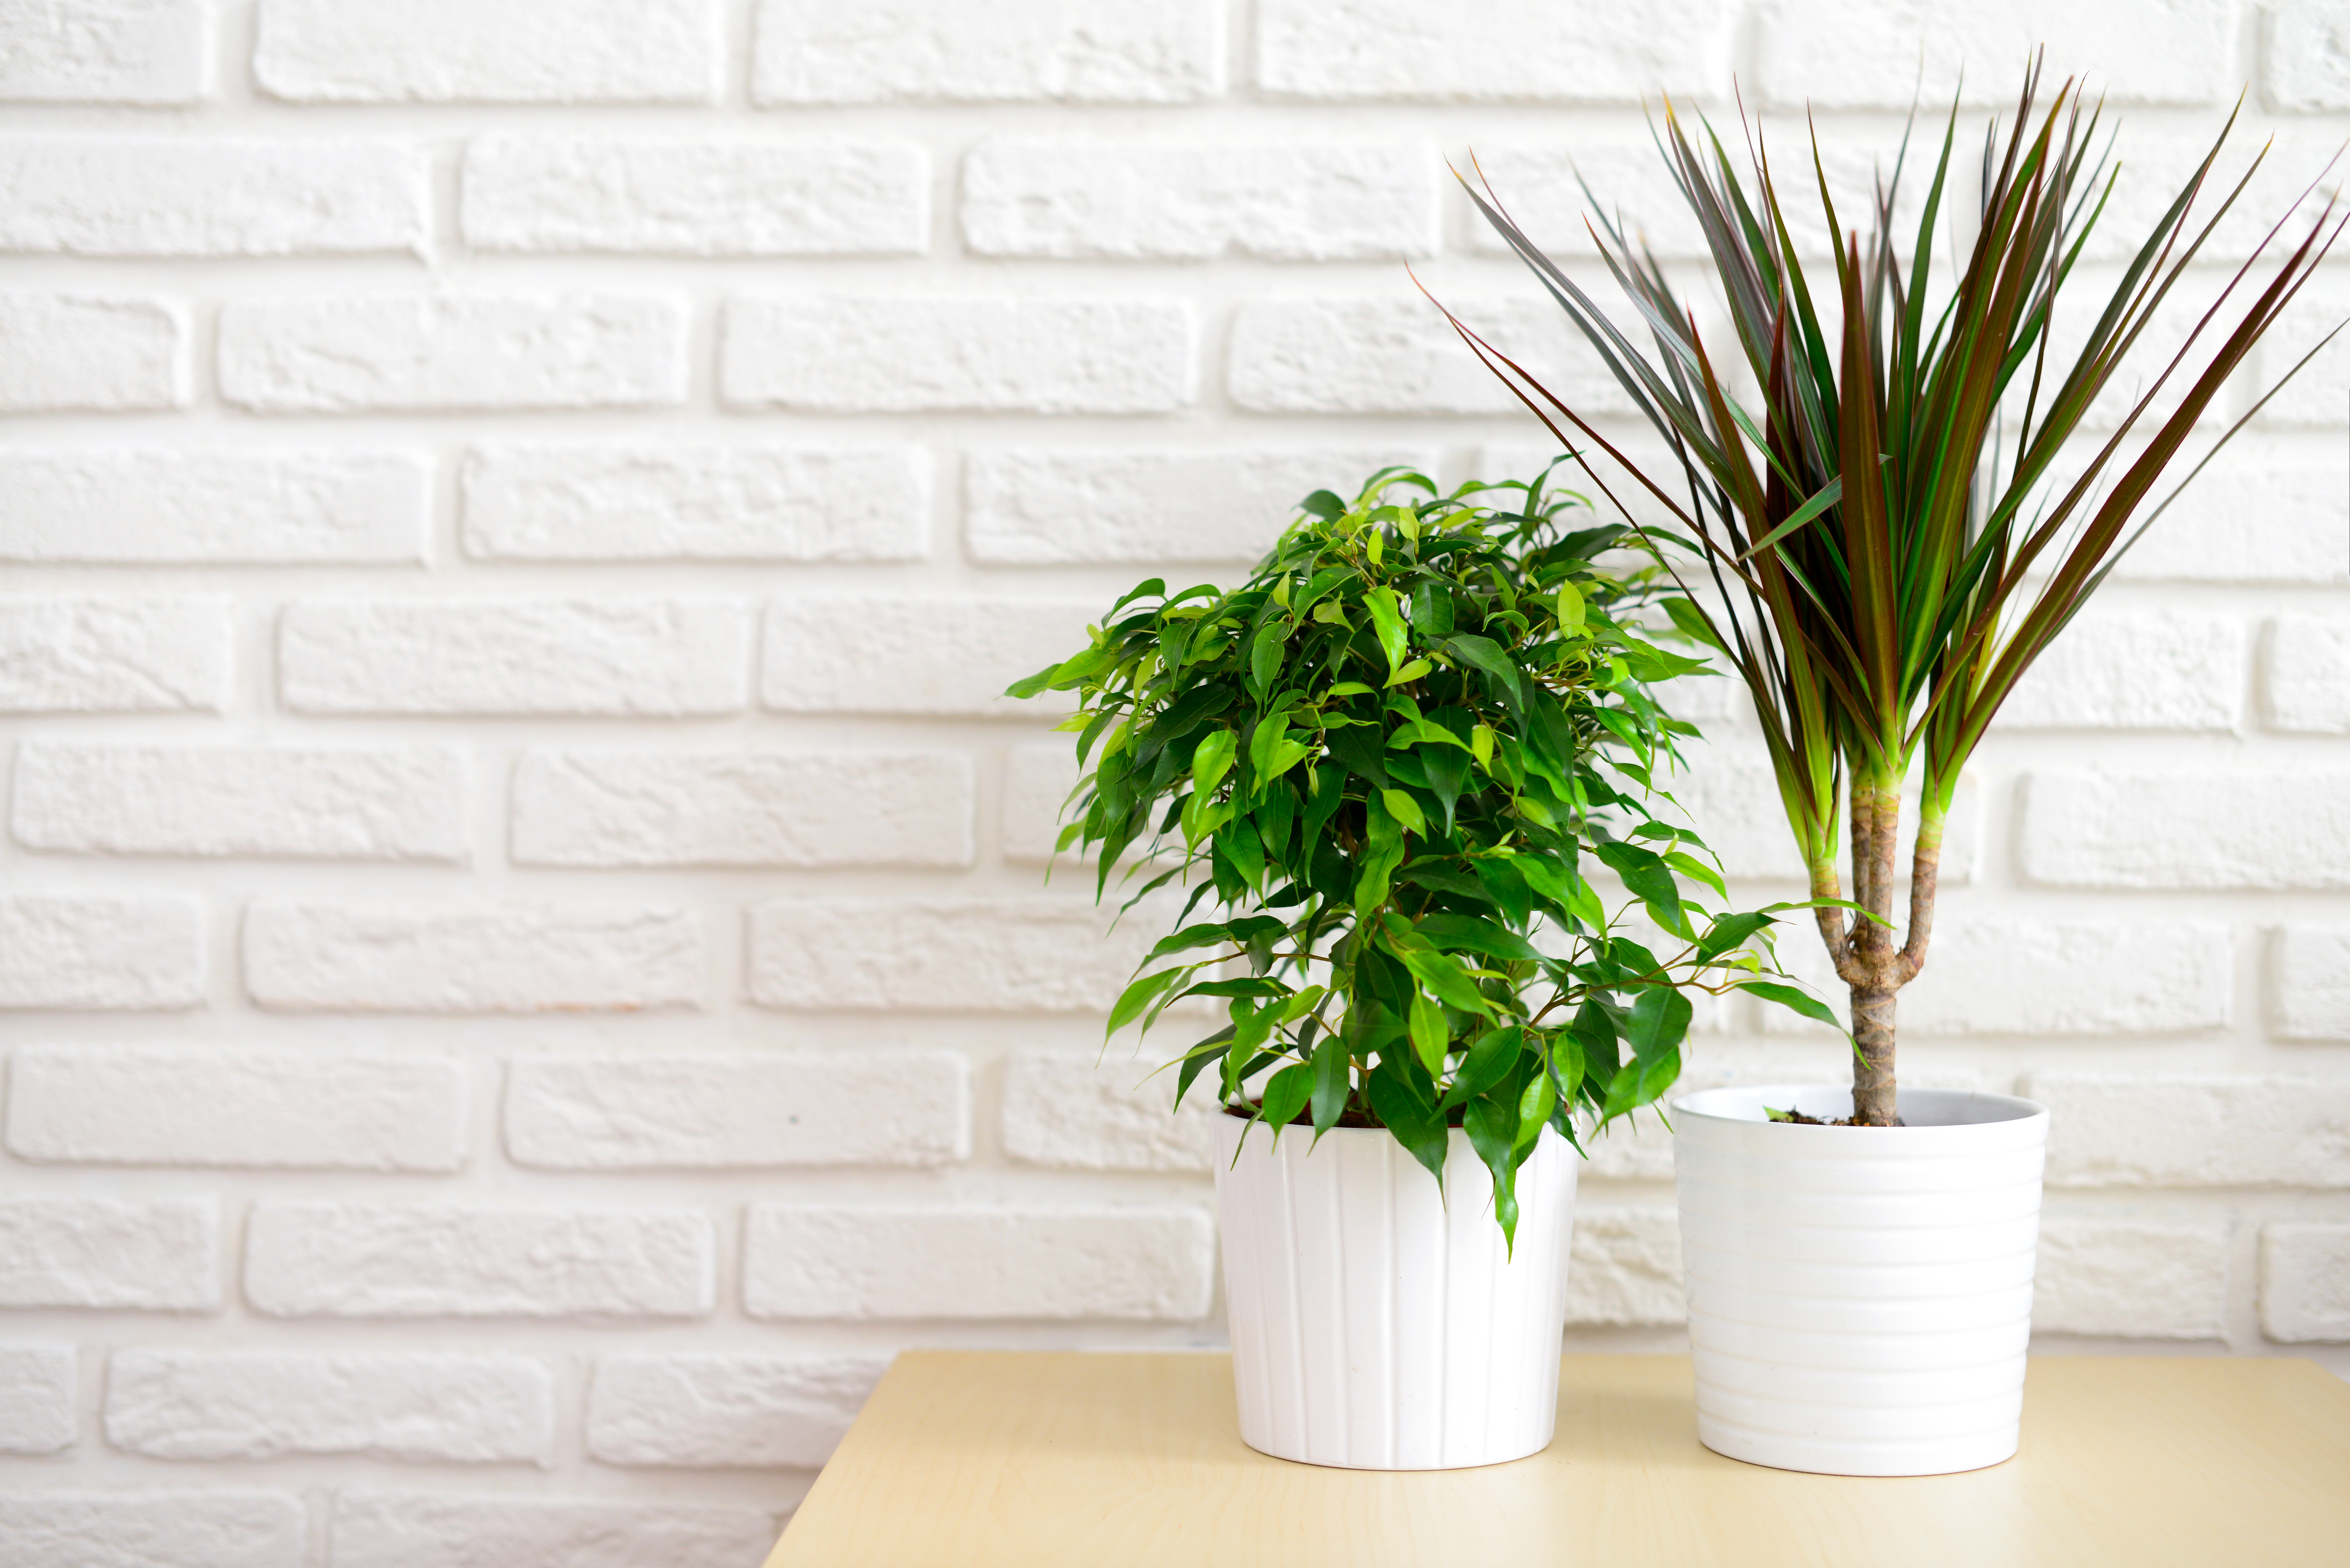 Houseplants In Pots On A Table At Brick Wall